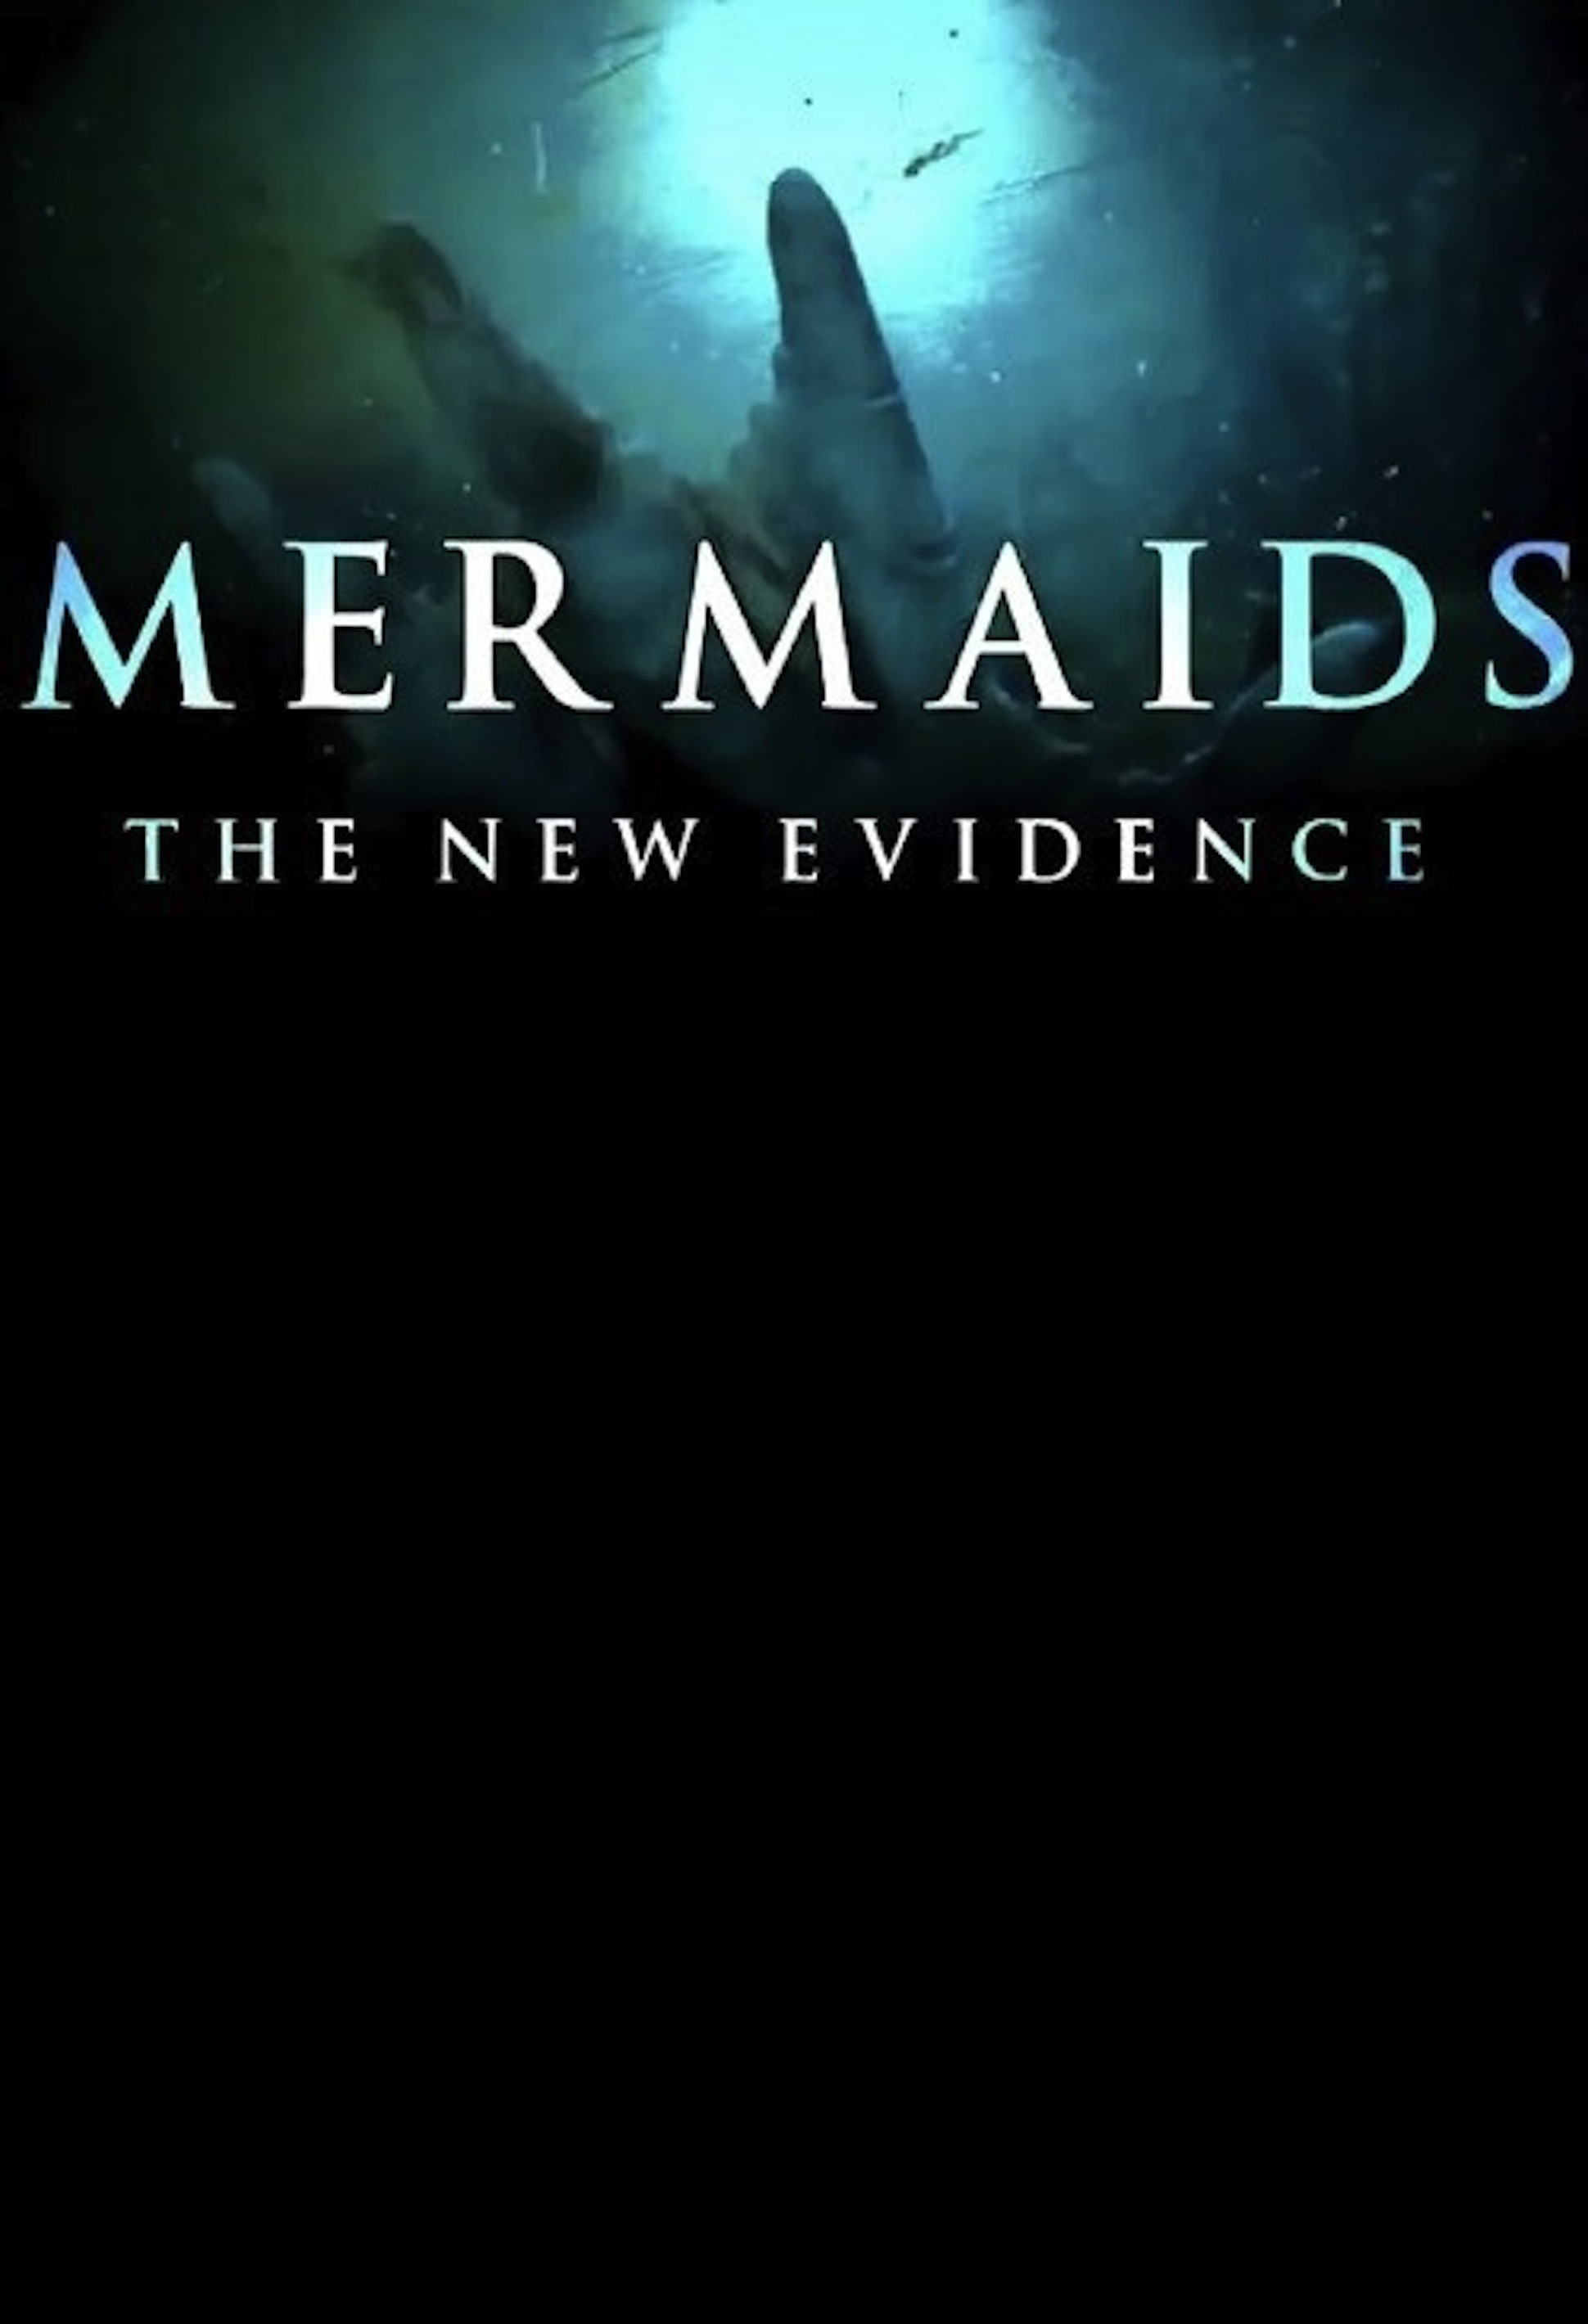 Mermaids the new evidence wiki